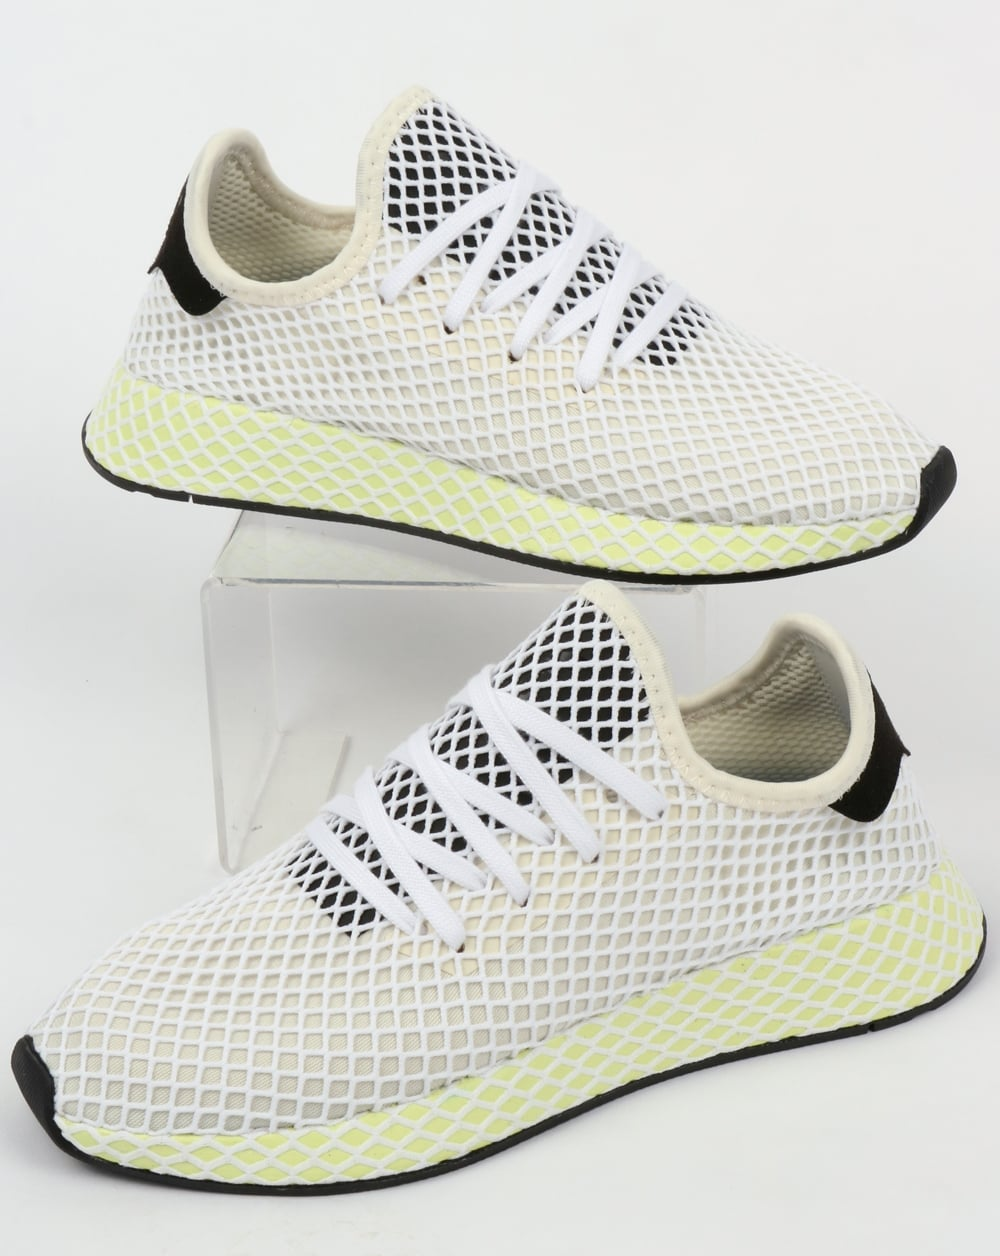 bb3e44a51 Adidas Deerupt Runner Trainers Chalk White Black